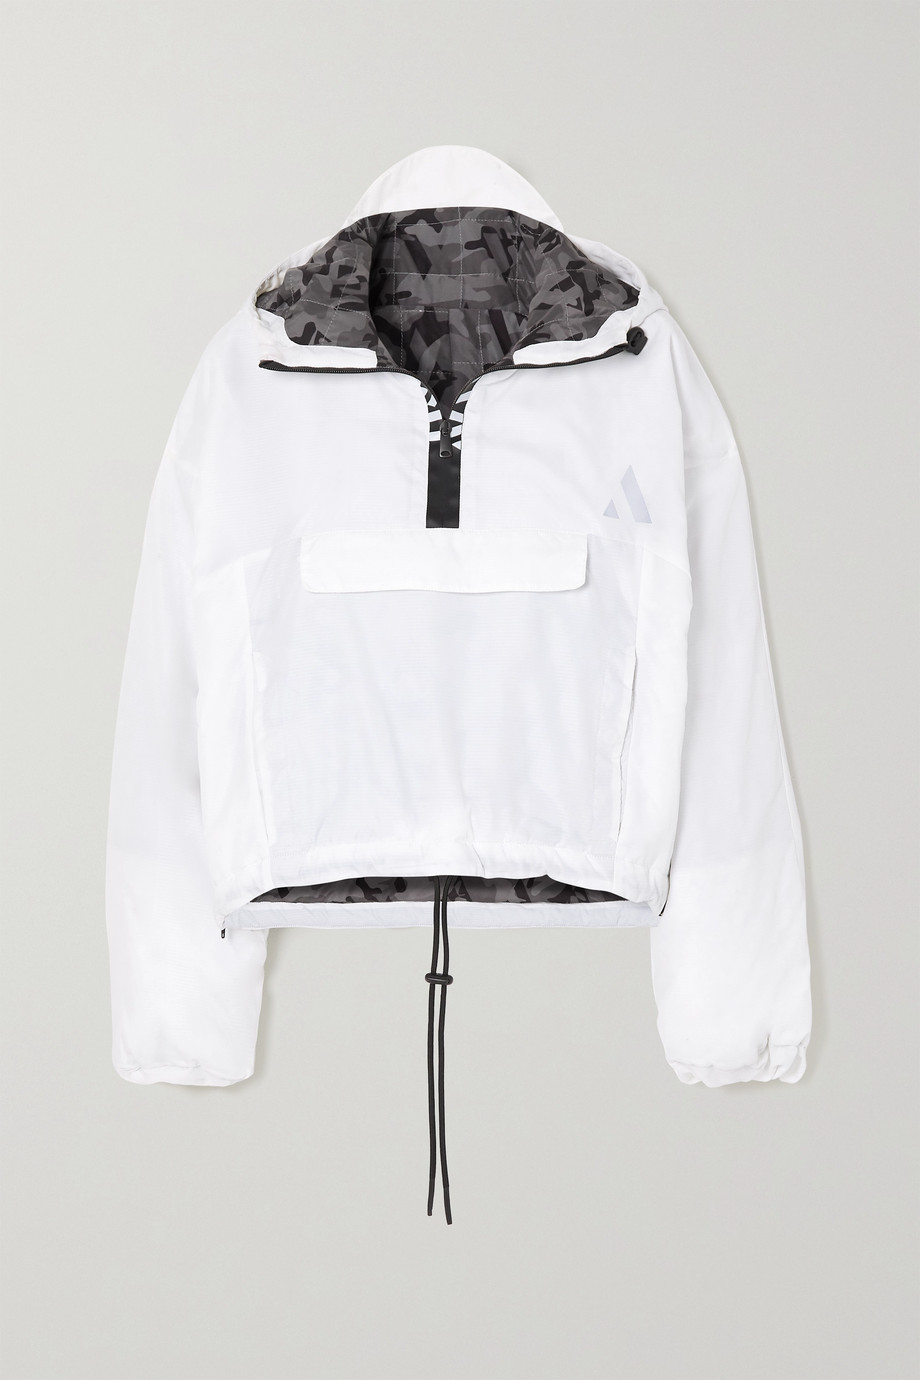 AARMY Smash hooded shell jacket